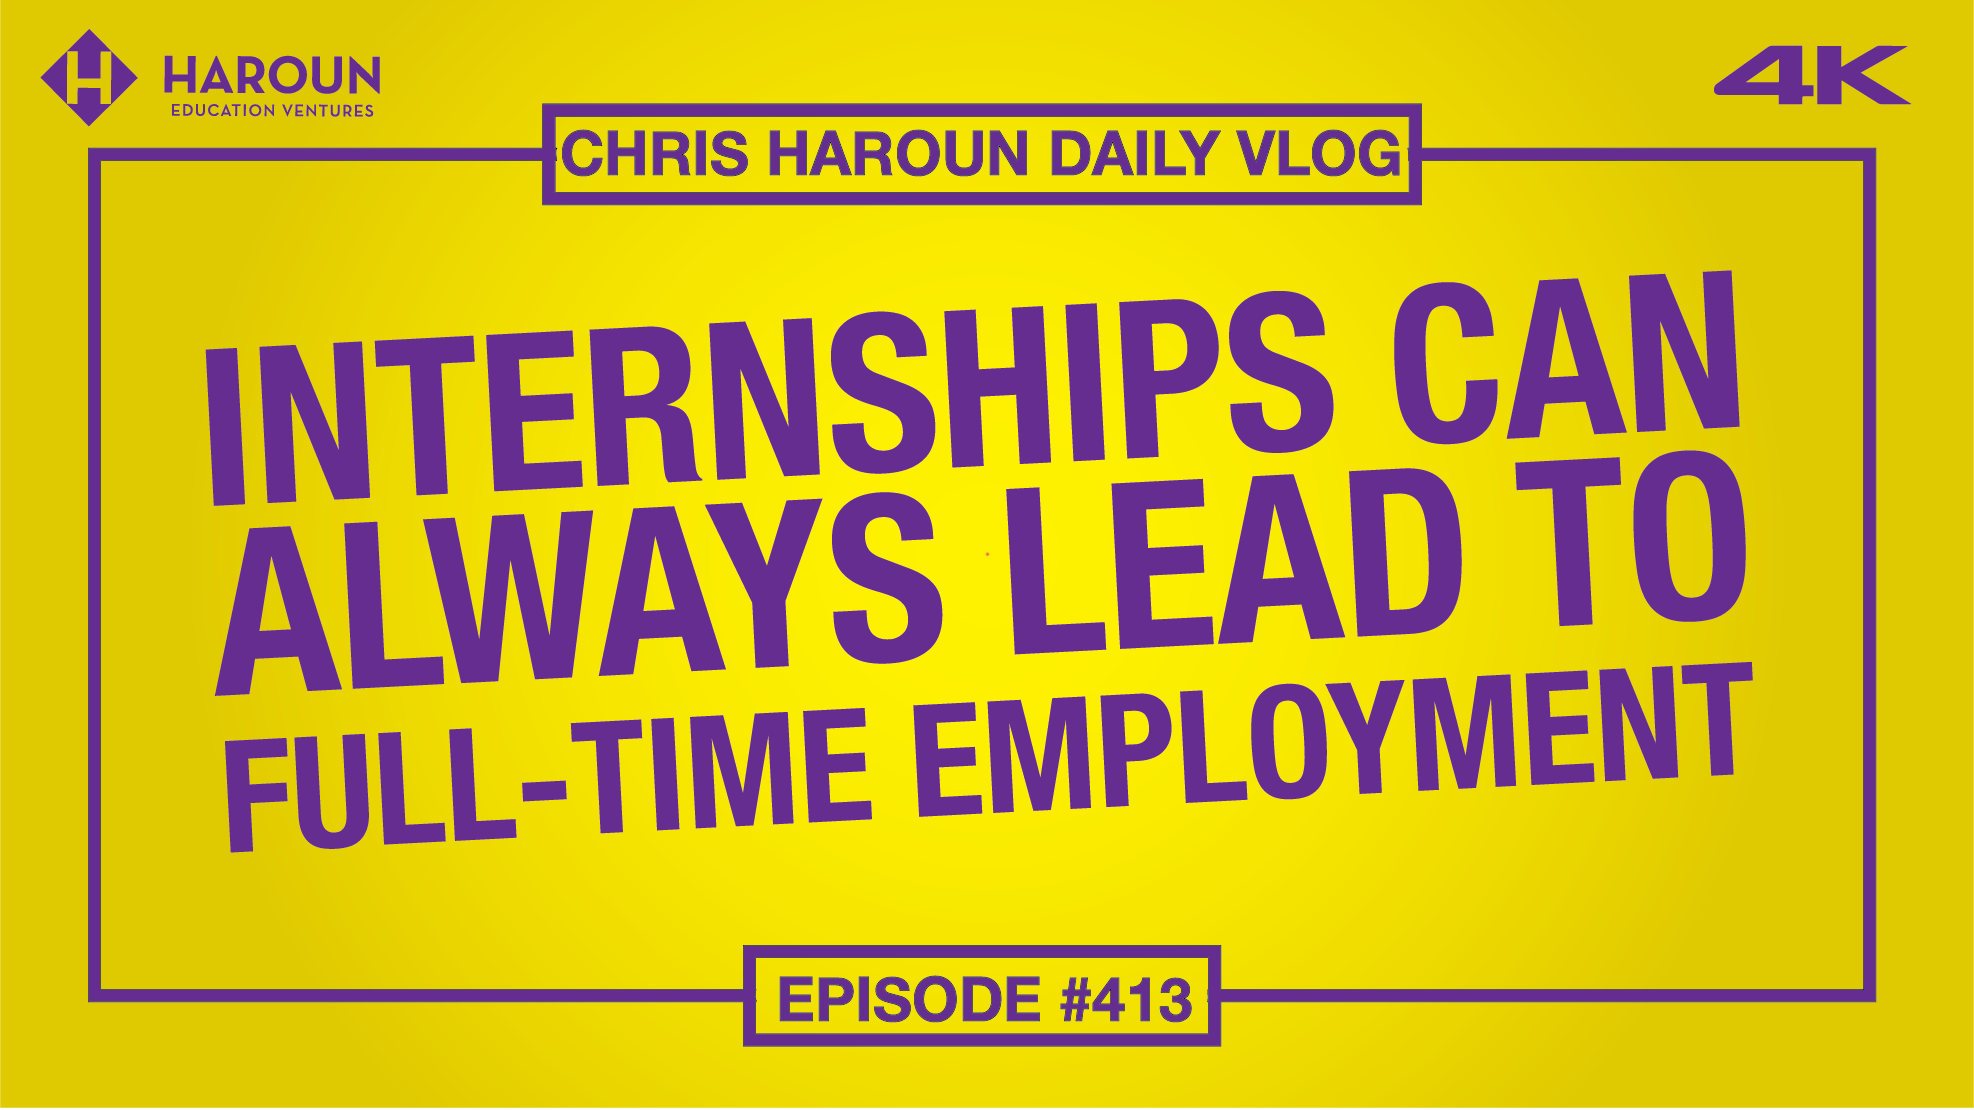 VLOG_413_9_17_2019_Internships Can ALWAYS Lead to Full-Time Employment.png